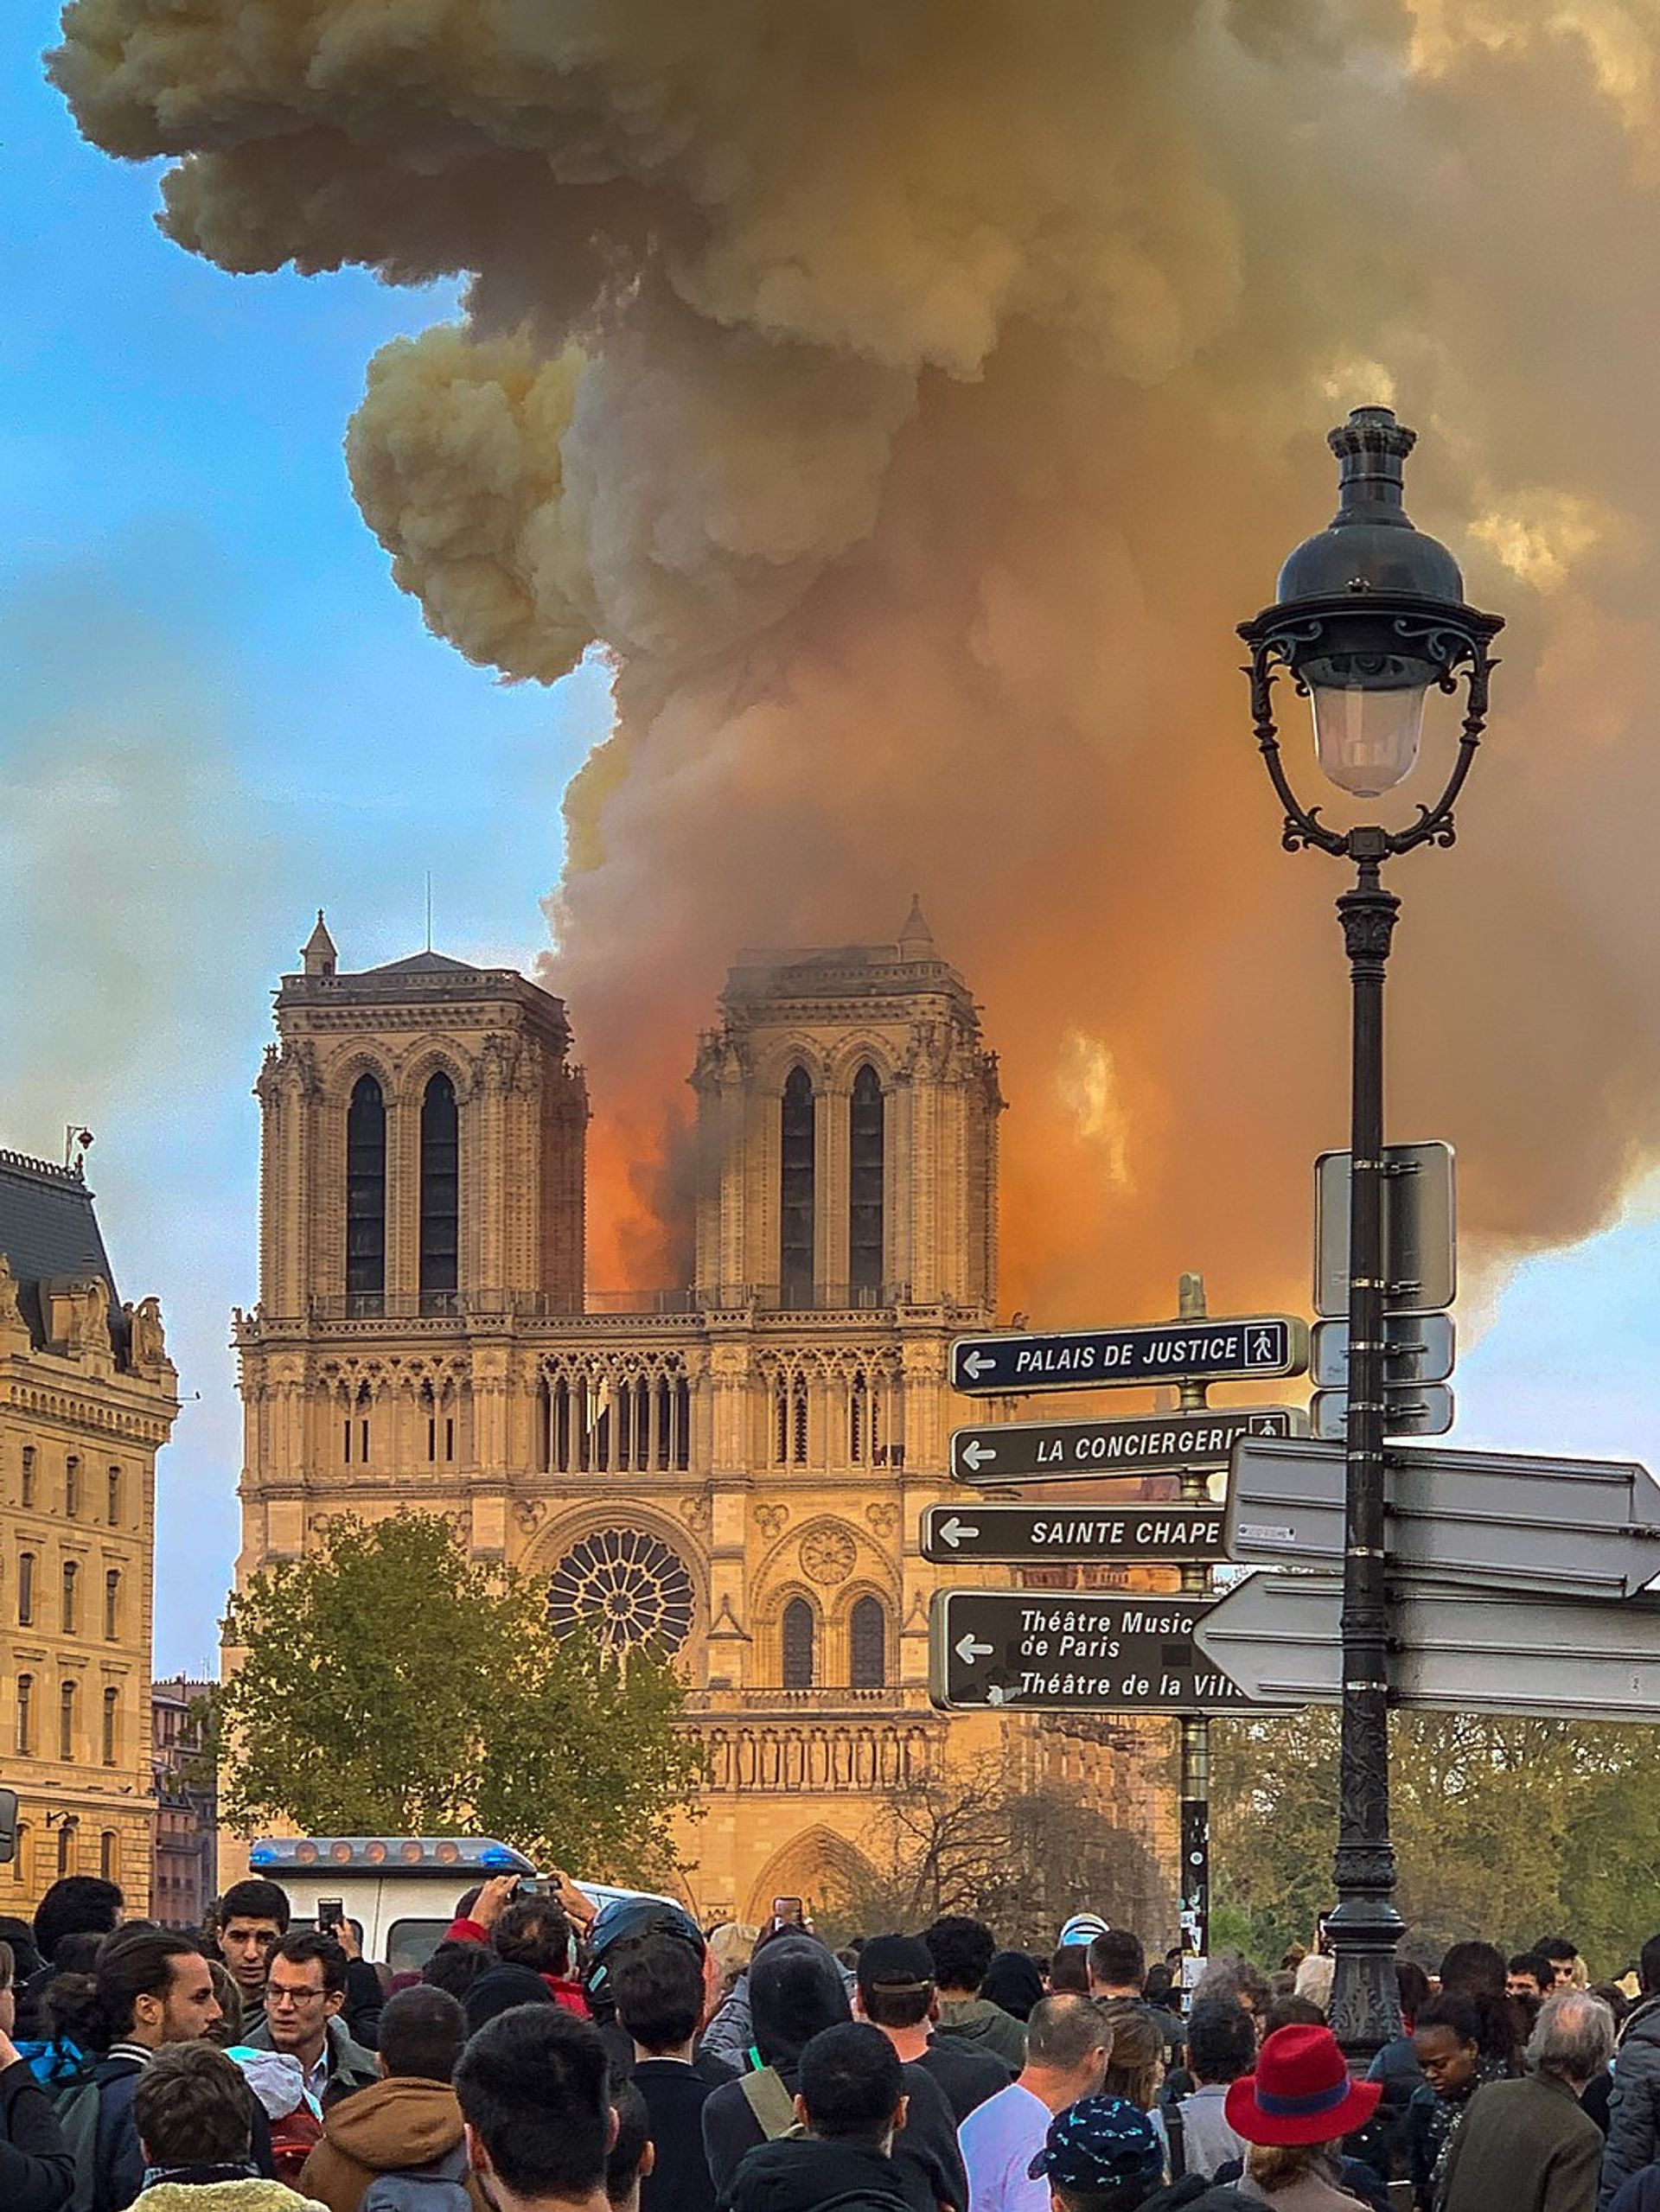 After the Notre Dame fire on 15 April, billionaires and businesses lined up to back the rebuilding campaign Photo: Milliped via Wikicommons